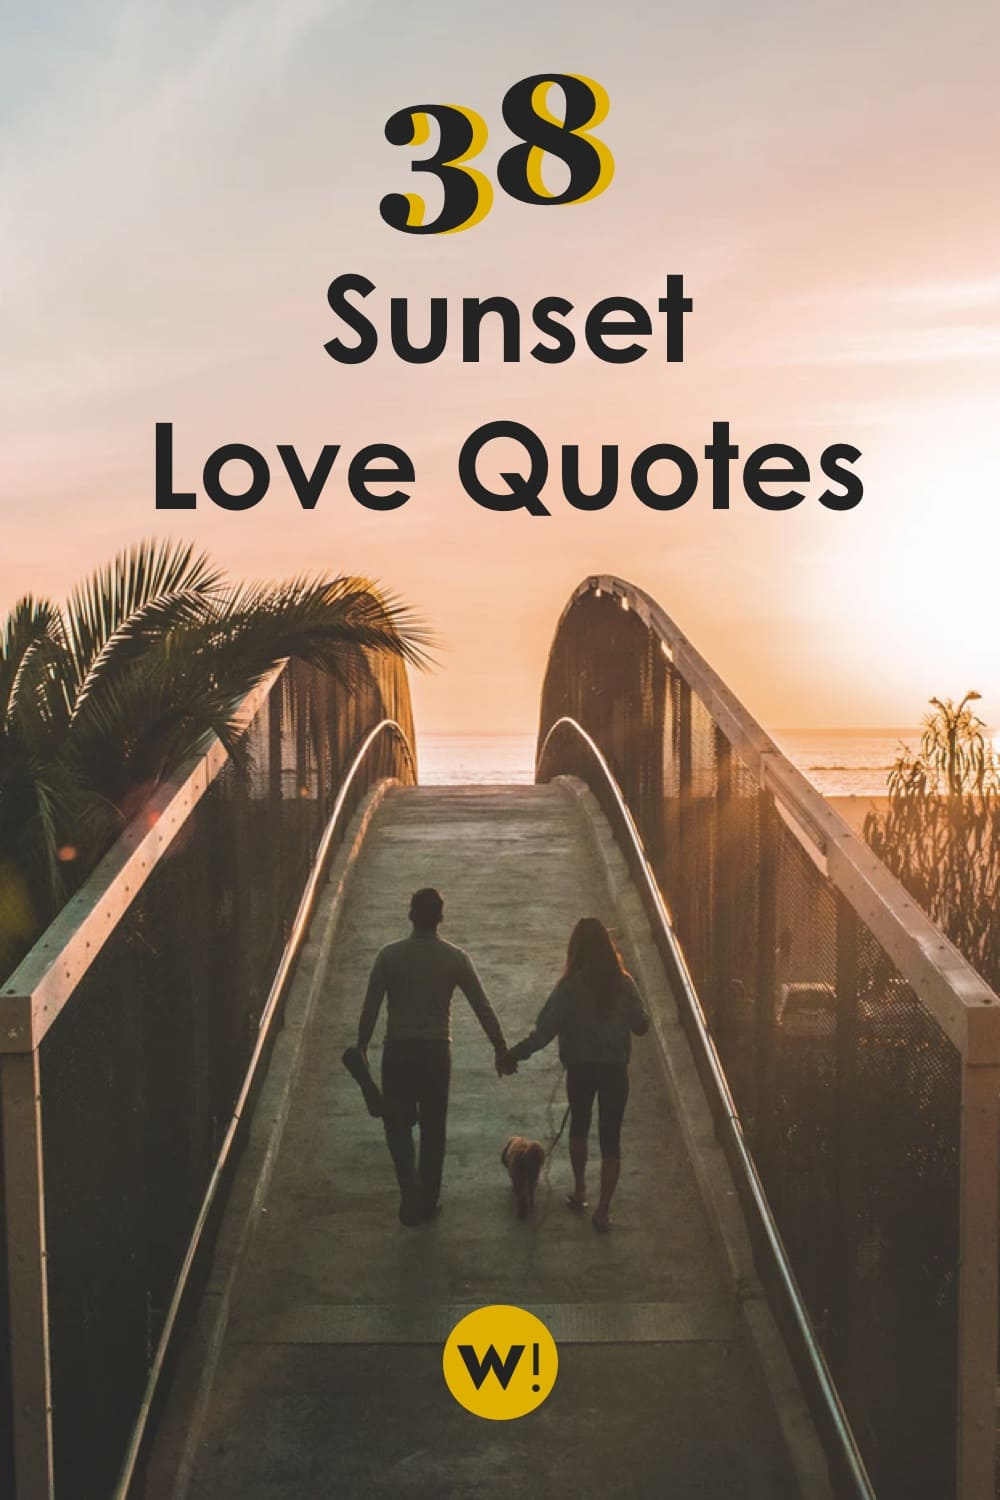 Looking for sunset love quotes? Not just quotes about sunset, but quotes that put together love & sunset? Well then, you're exactly in the right place. Let's see 38 incredibly romantic sunset quotes! sunset love captions | sunset love quotes for him |sunset love quotes relationships |sunset love quotes romantic |sunset love quotes thoughts |sunset love quotes feelings | sunset love quotes romantic